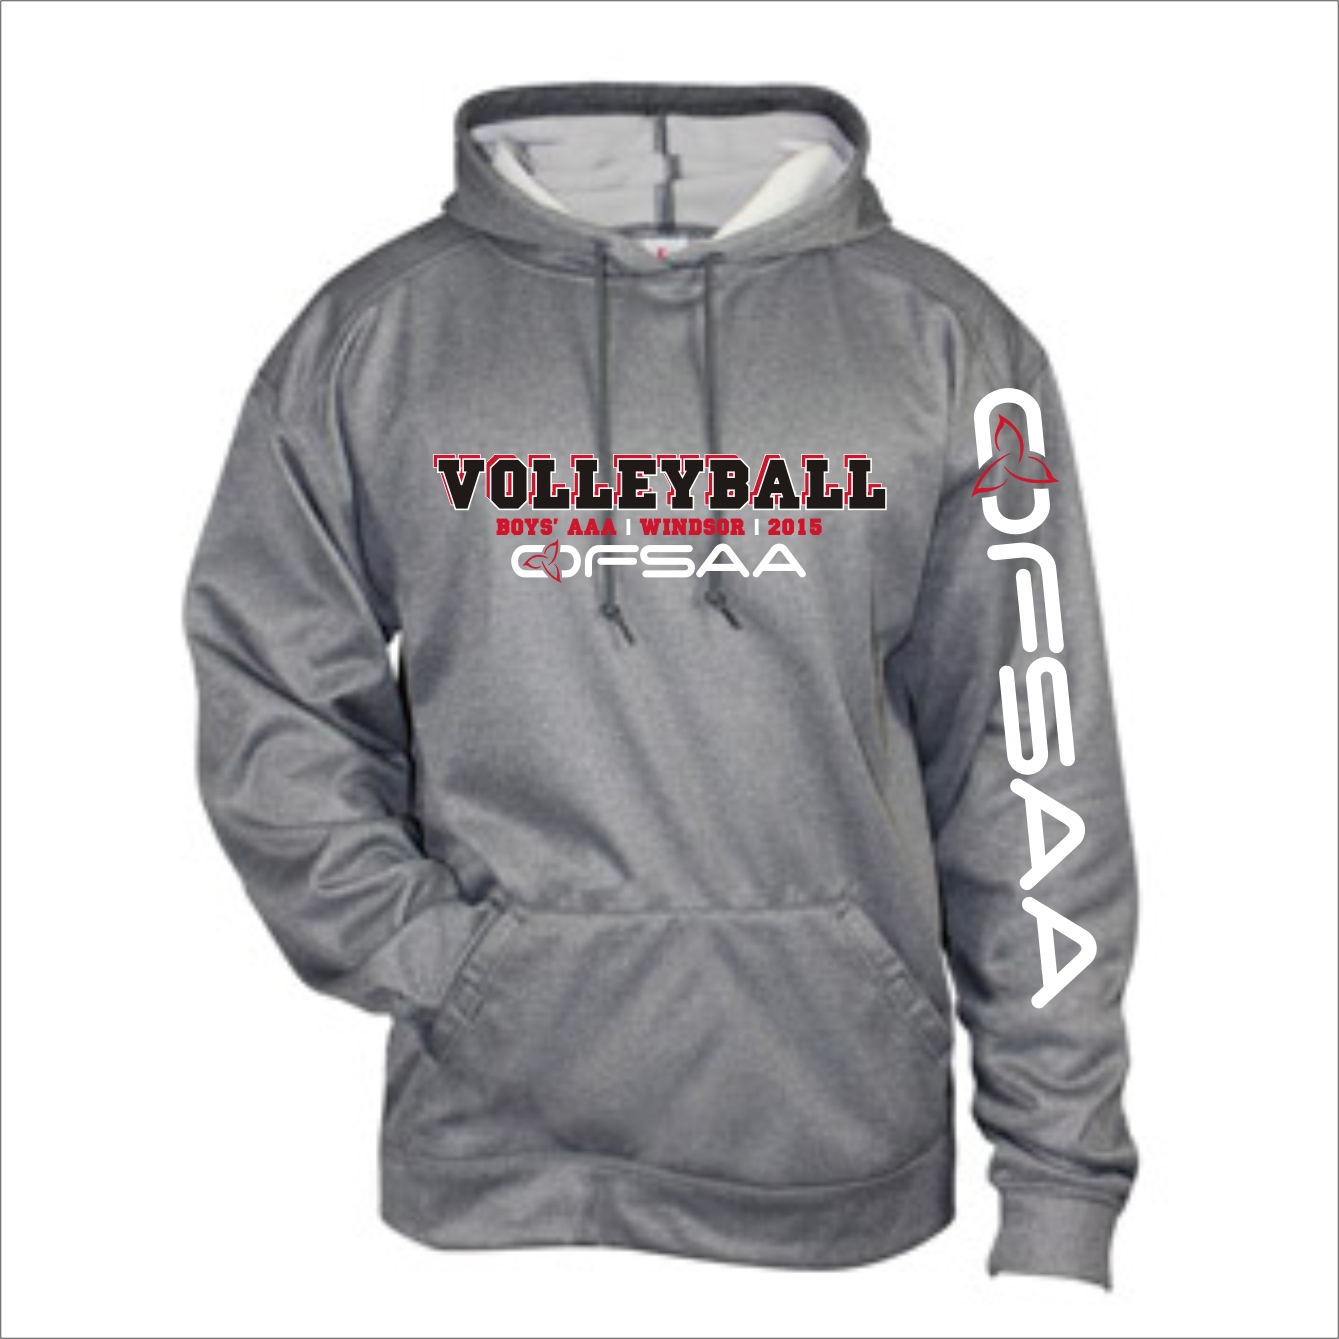 2015 Boys 3A Volleyball Hoodie single.jpg